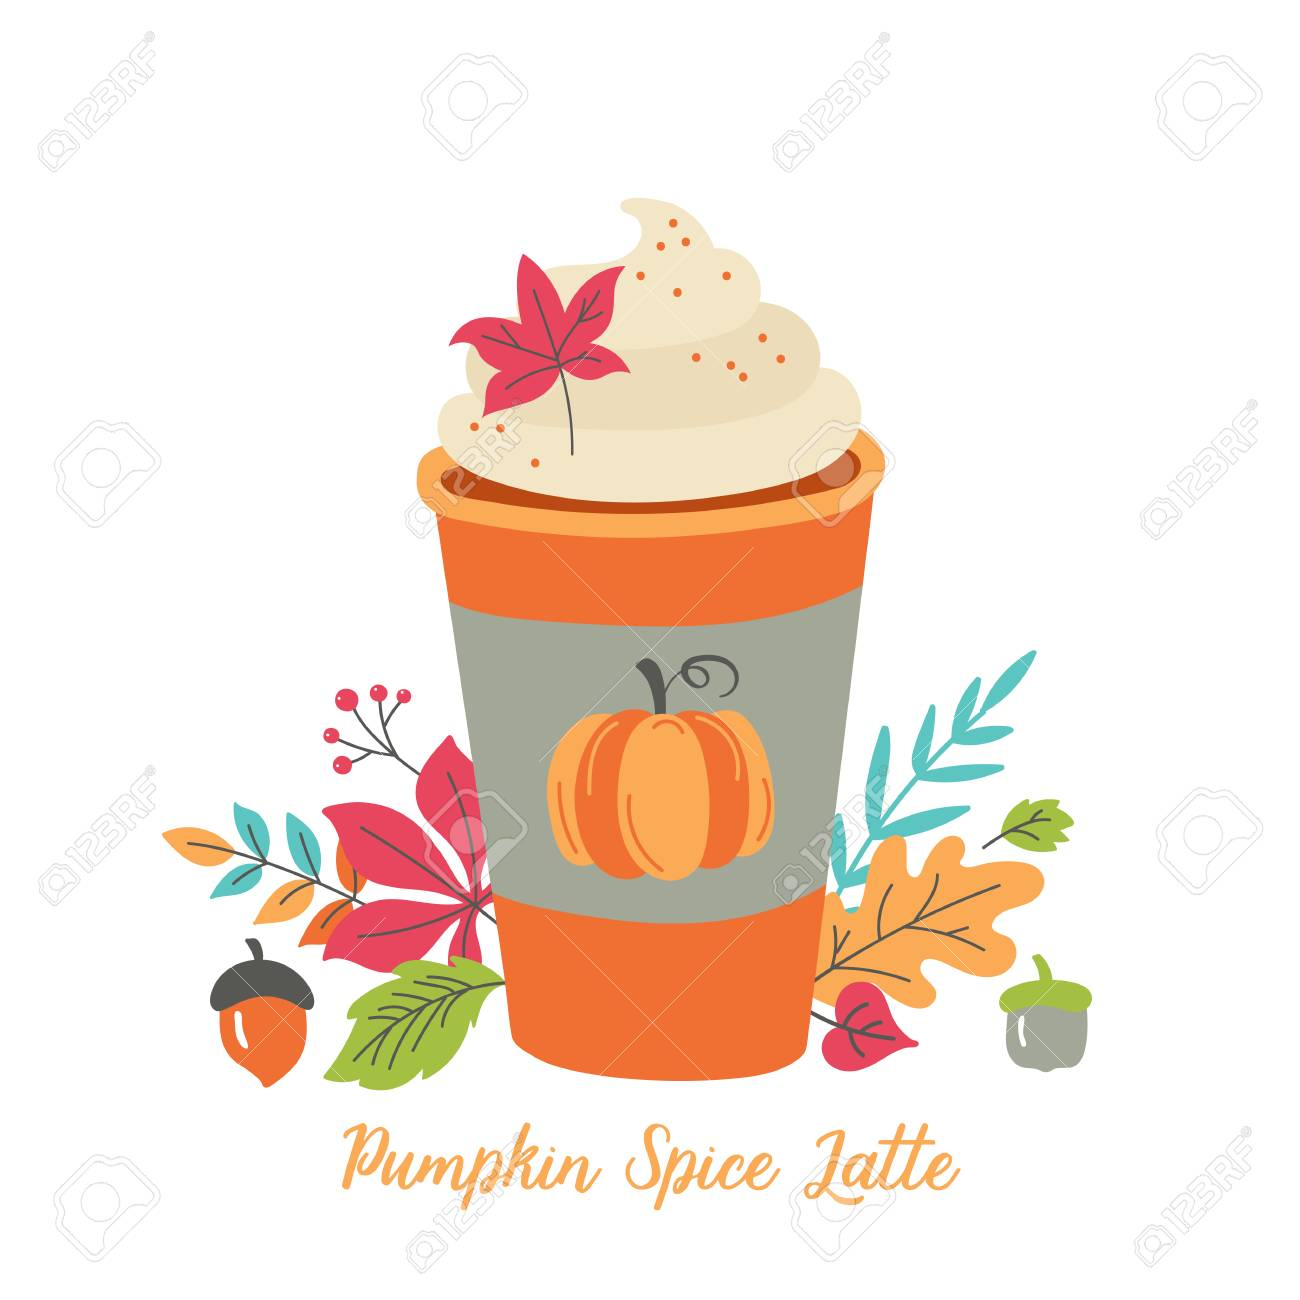 Pumpkin spice latte coffee cup for autumn menu or greeting card design. Vector illustration - 110106035